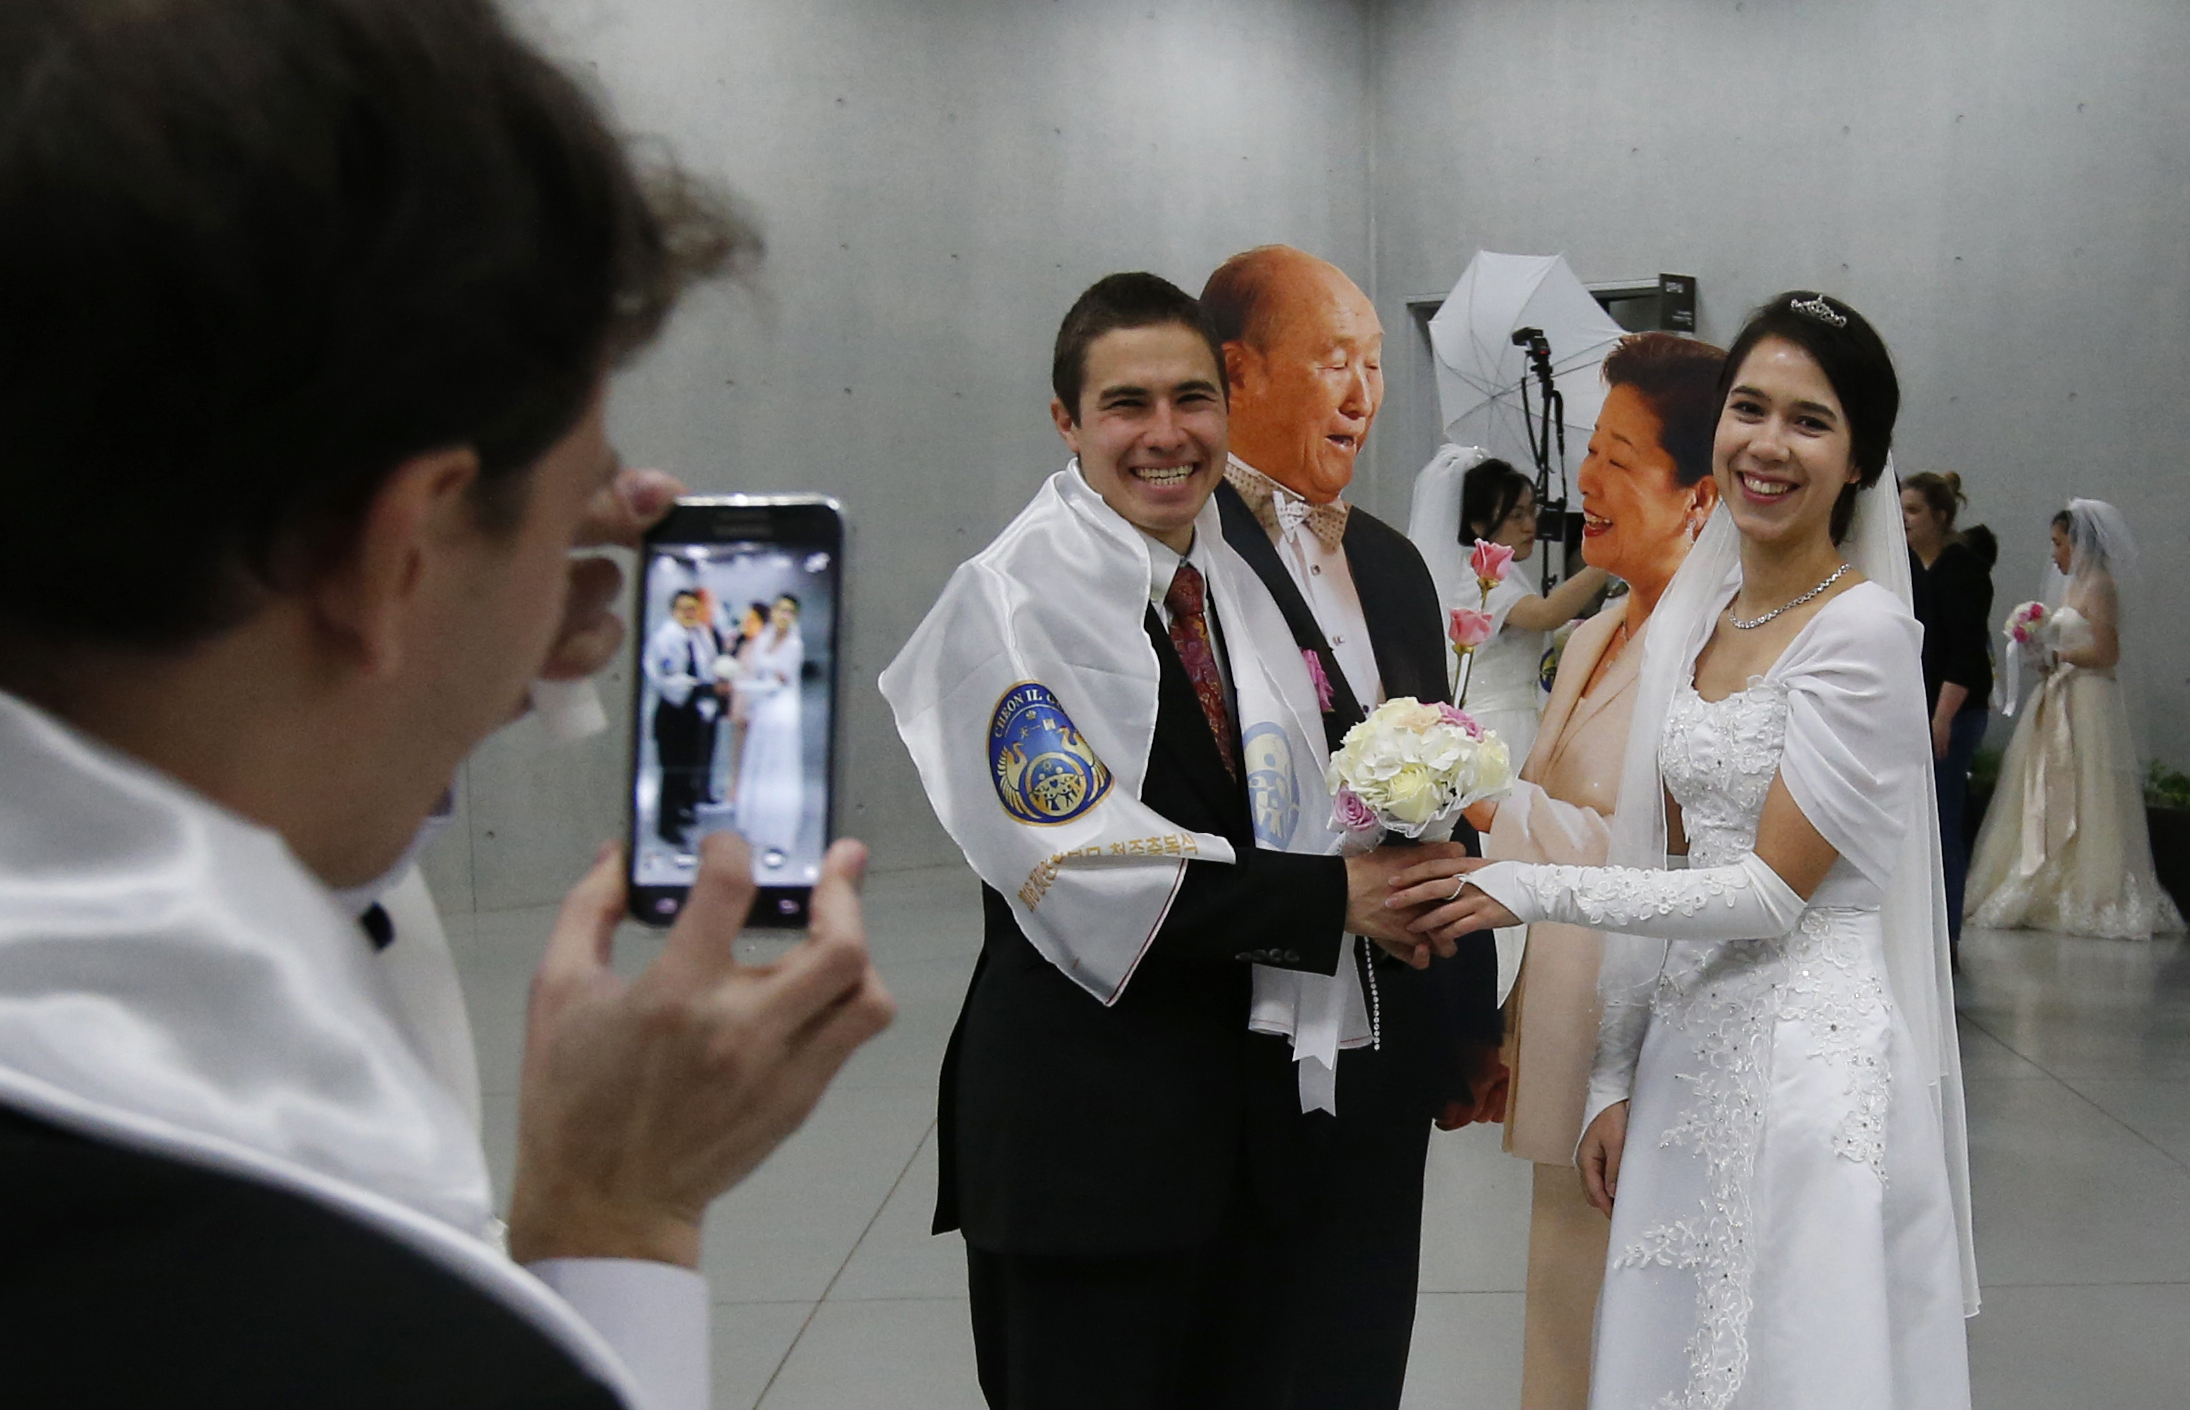 A couple have their souvenir photo taken near the cutout pictures of late Rev. Sun Myung Moon, the founder of the Unification Church and wife Hak Ja Han Moon before their mass wedding ceremony at the Cheong Shim Peace World Center in Gapyeong, South Korea, Saturday, Feb. 20, 2016. Three thousand of couples from more than 60 countries attended and other 12,000 couples participated in the Unification Church's mass wedding via live-streamed broadcast, according to the church, arranged by Hak Ja Han Moon. (AP Photo/Lee Jin-man) South Korea Mass Wedding